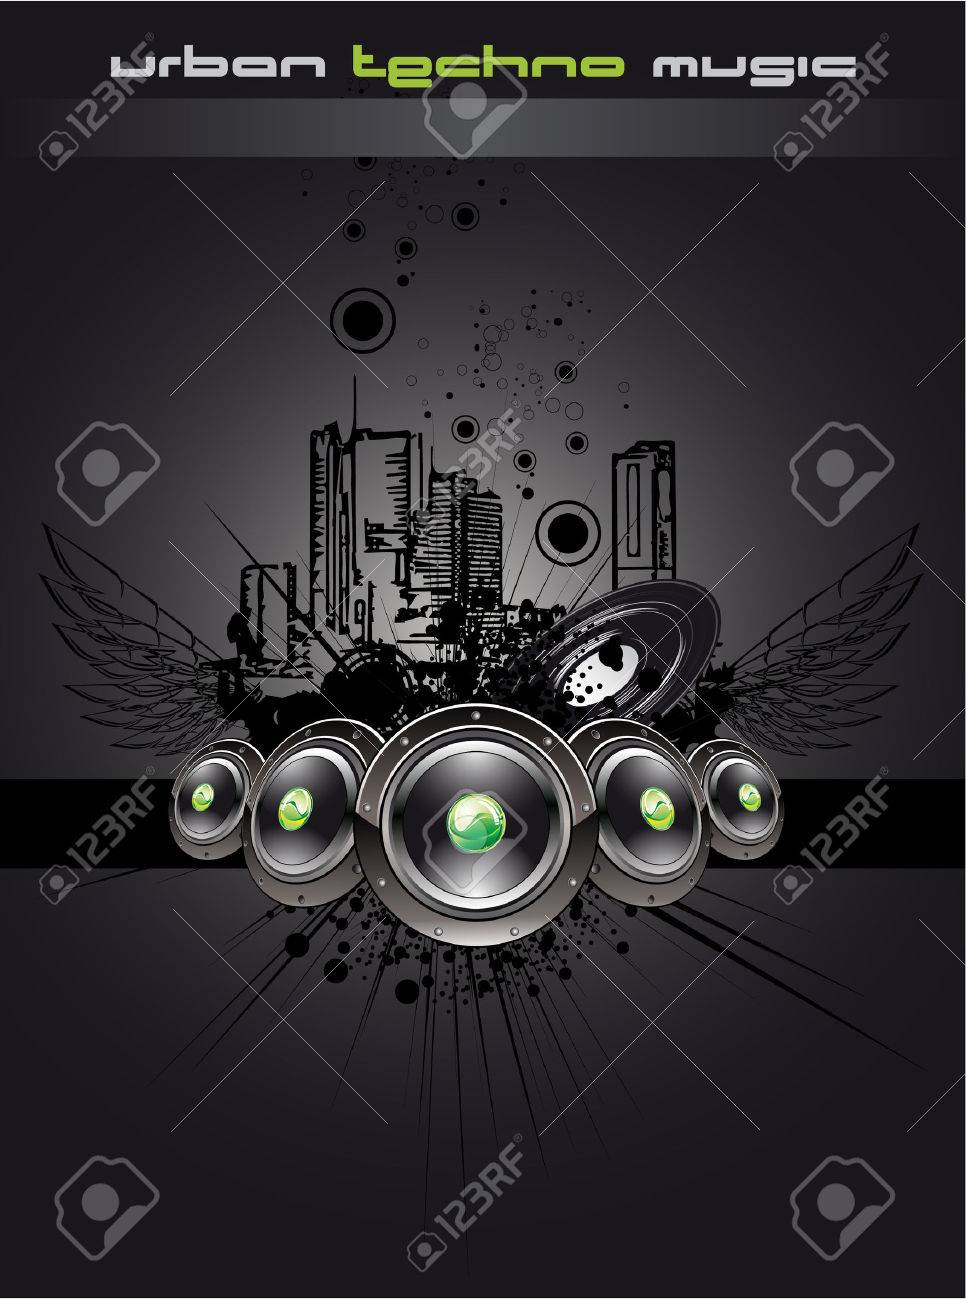 Urban Disco Dancing Music Event Background for Flyers Stock Vector - 5523725